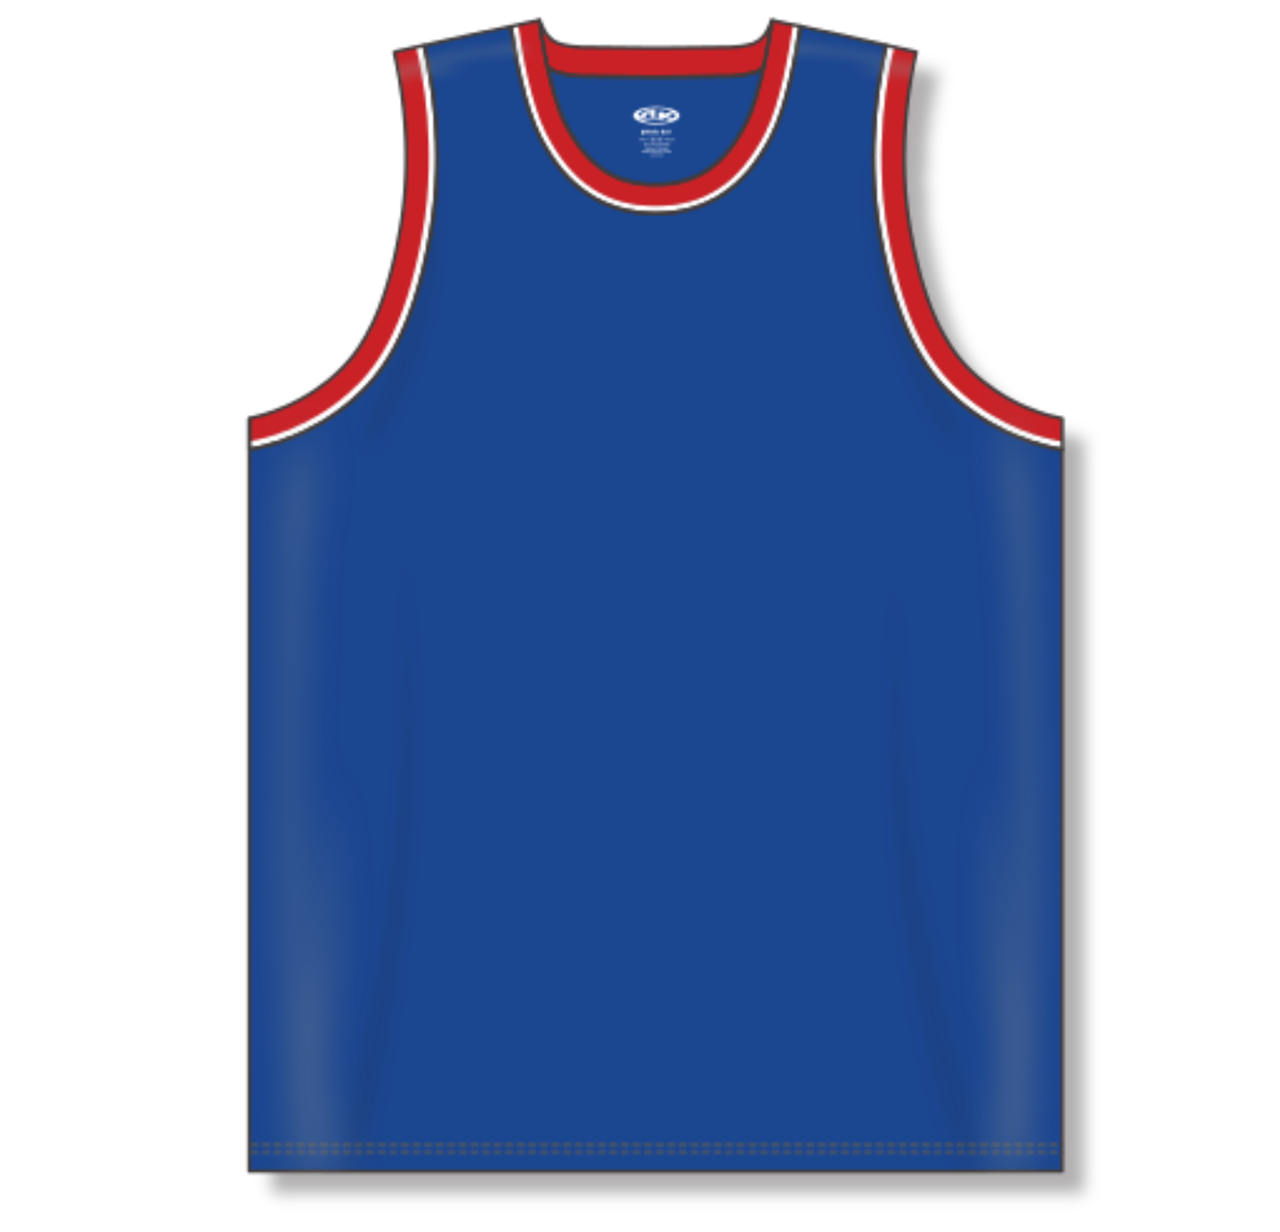 Picture of AK Pro Knitted Basketball Jersey (Youth)